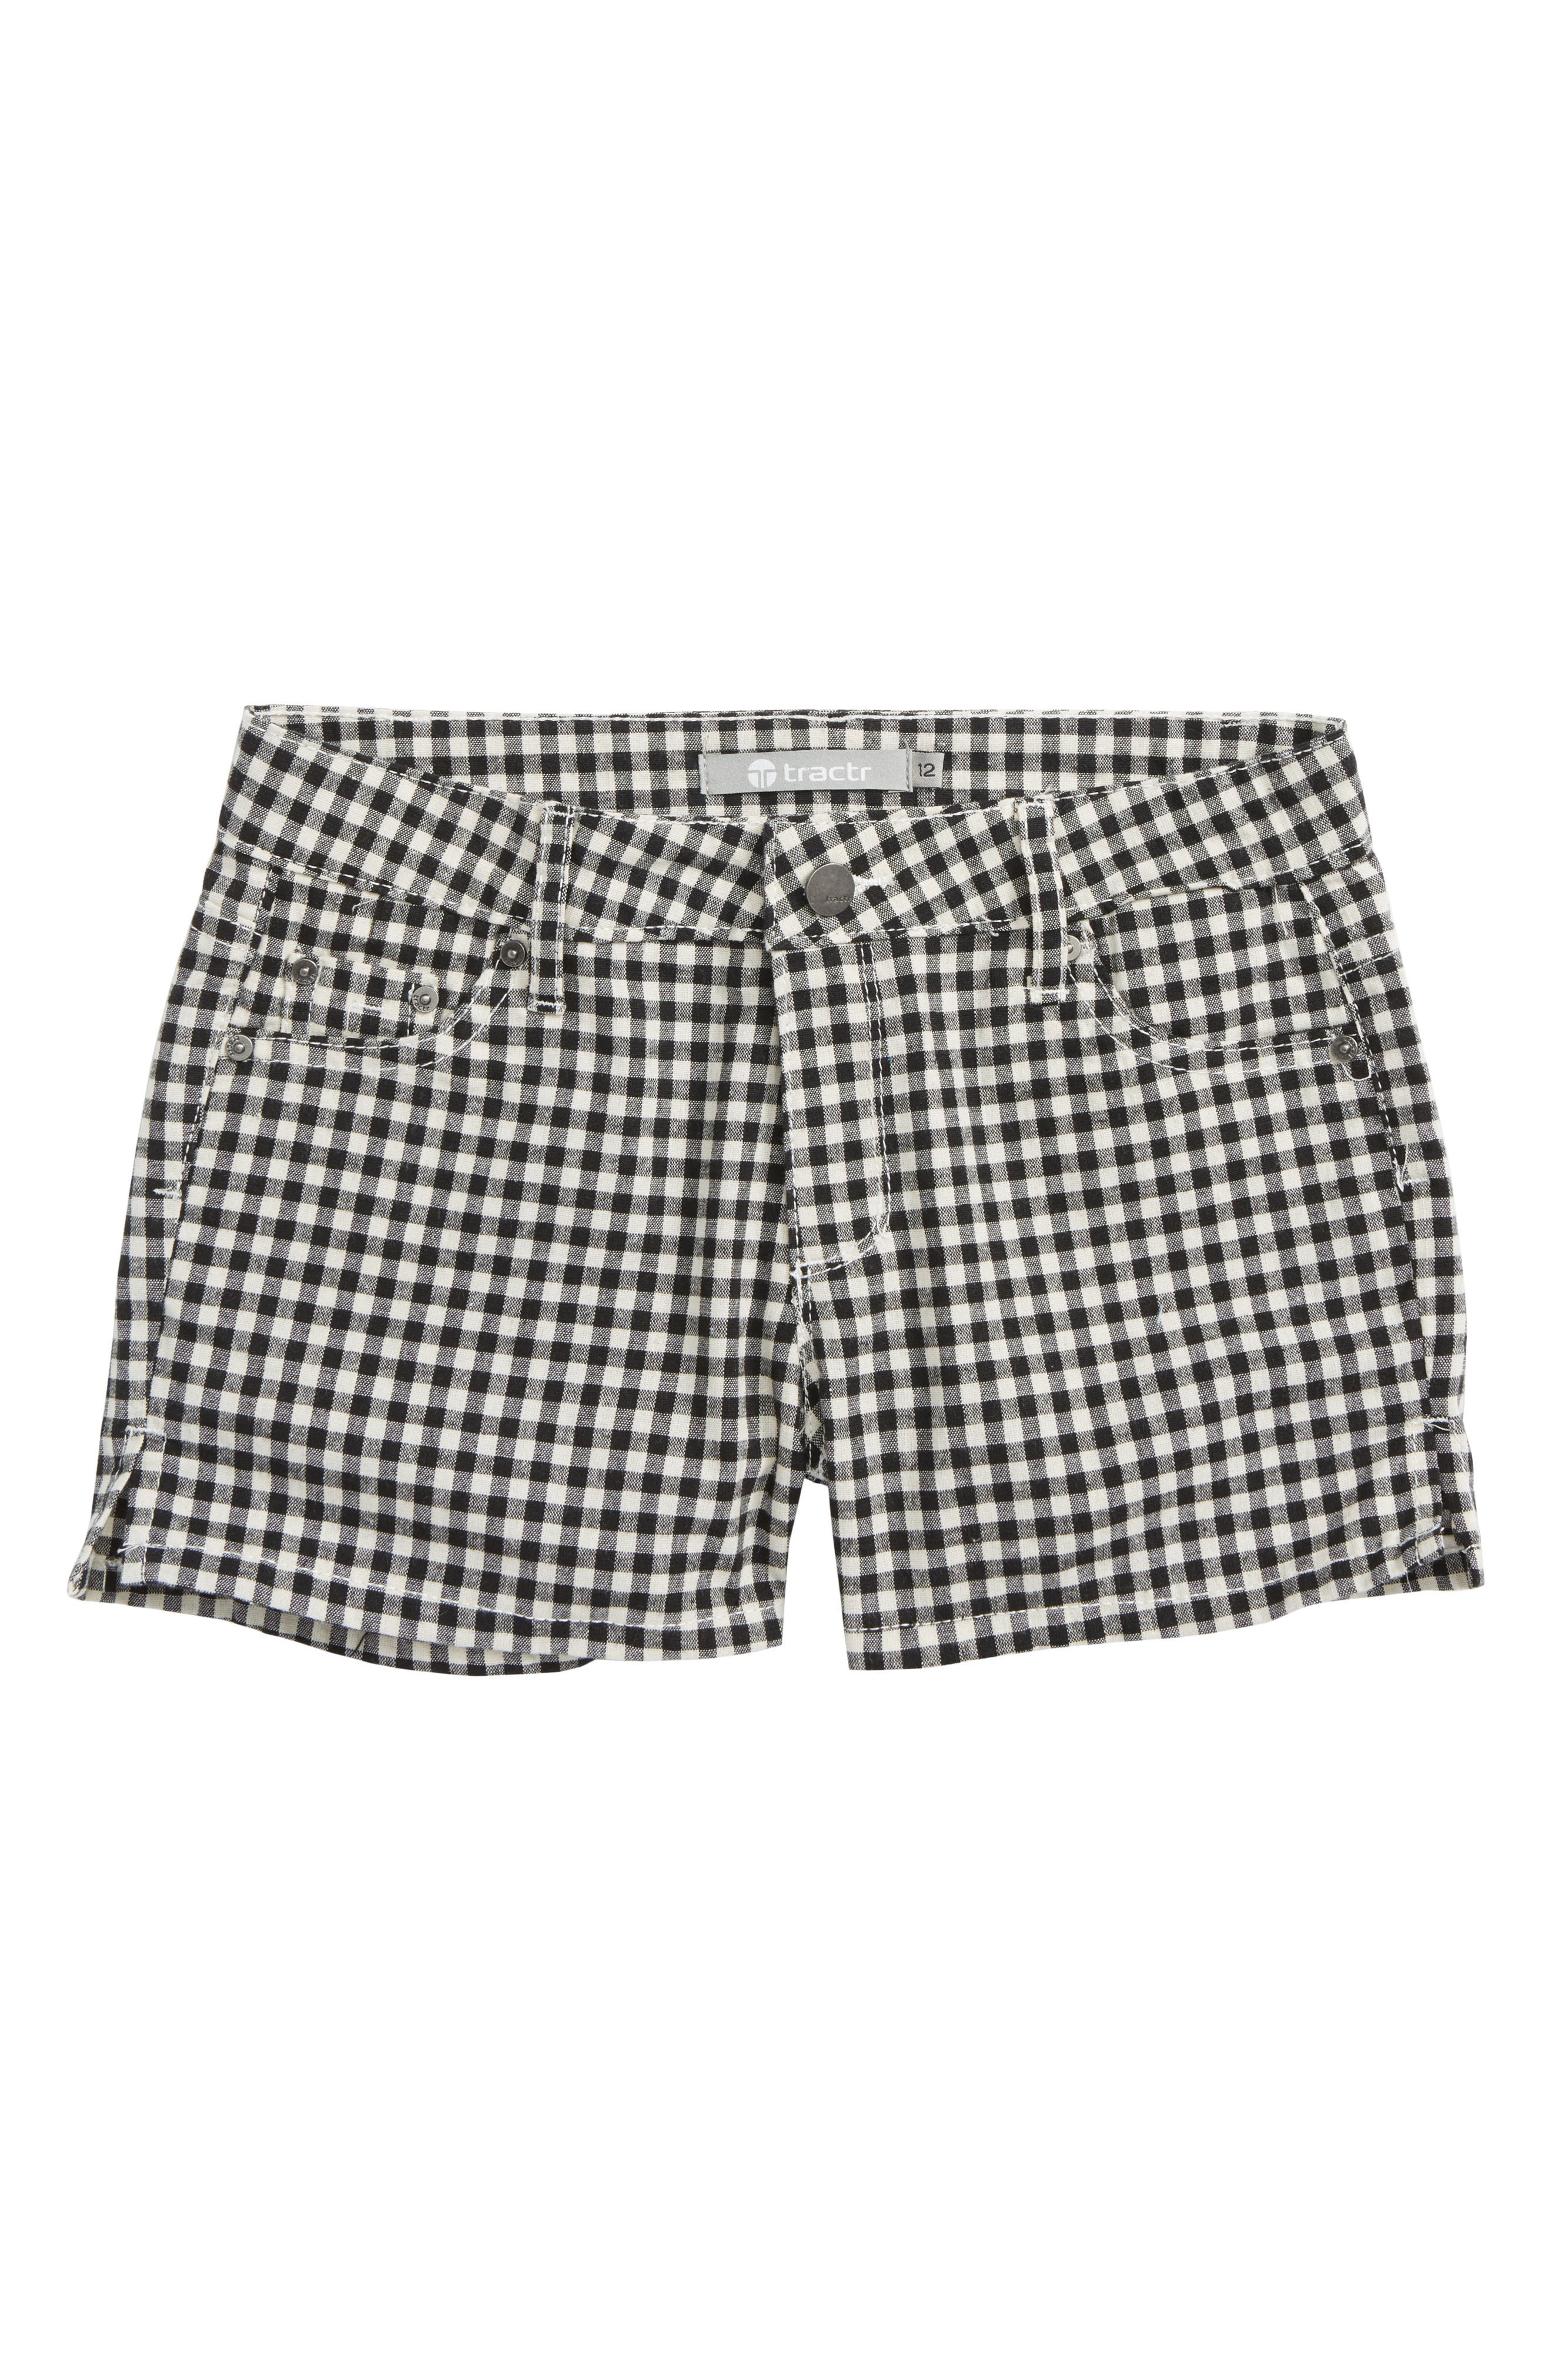 Alternate Image 1 Selected - Tractr Gingham Shorts (Big Girls)